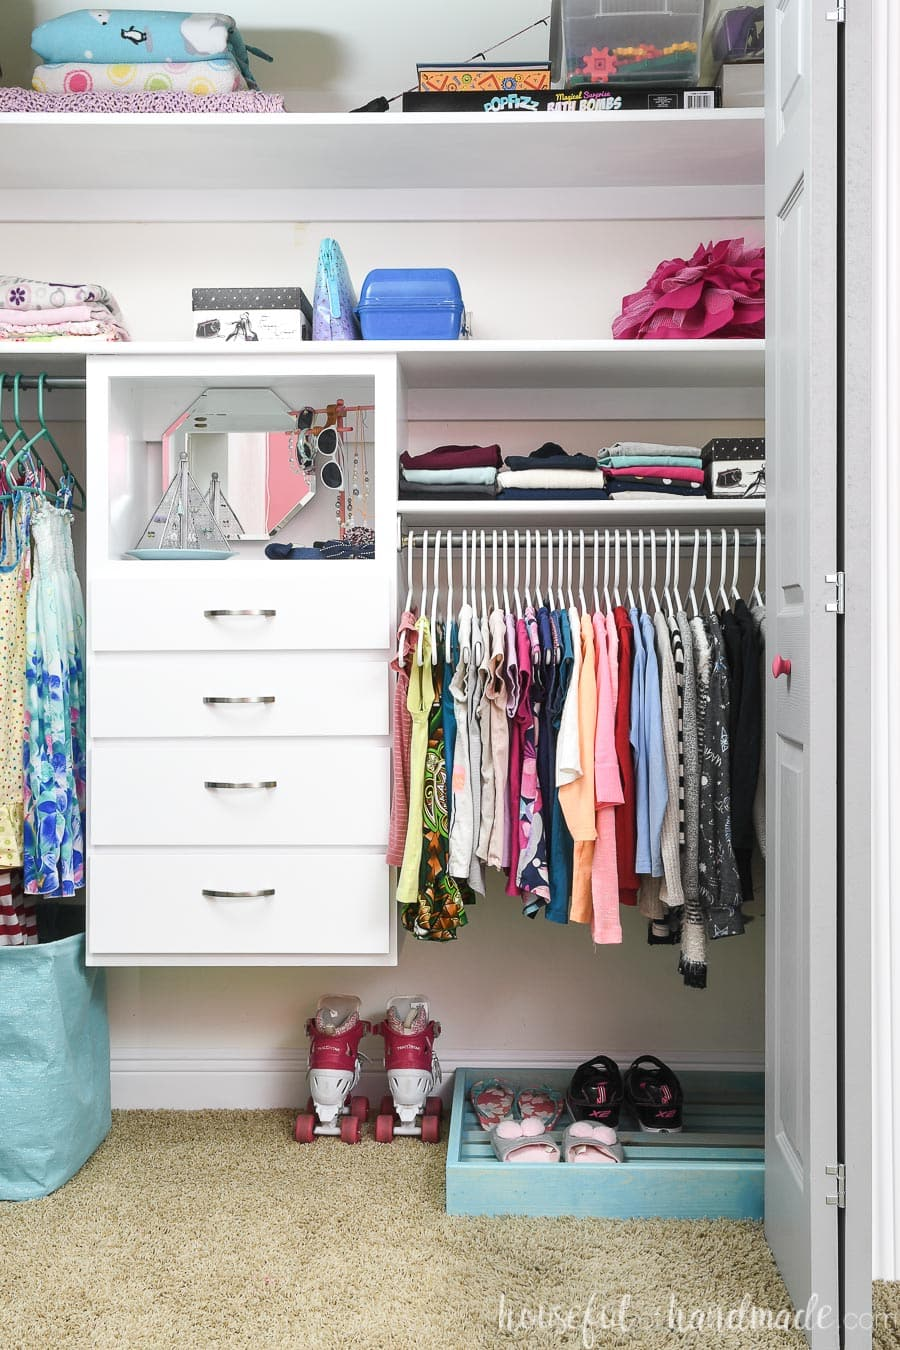 Full view of the organized girl's closet with shoe storage and closet organizer.